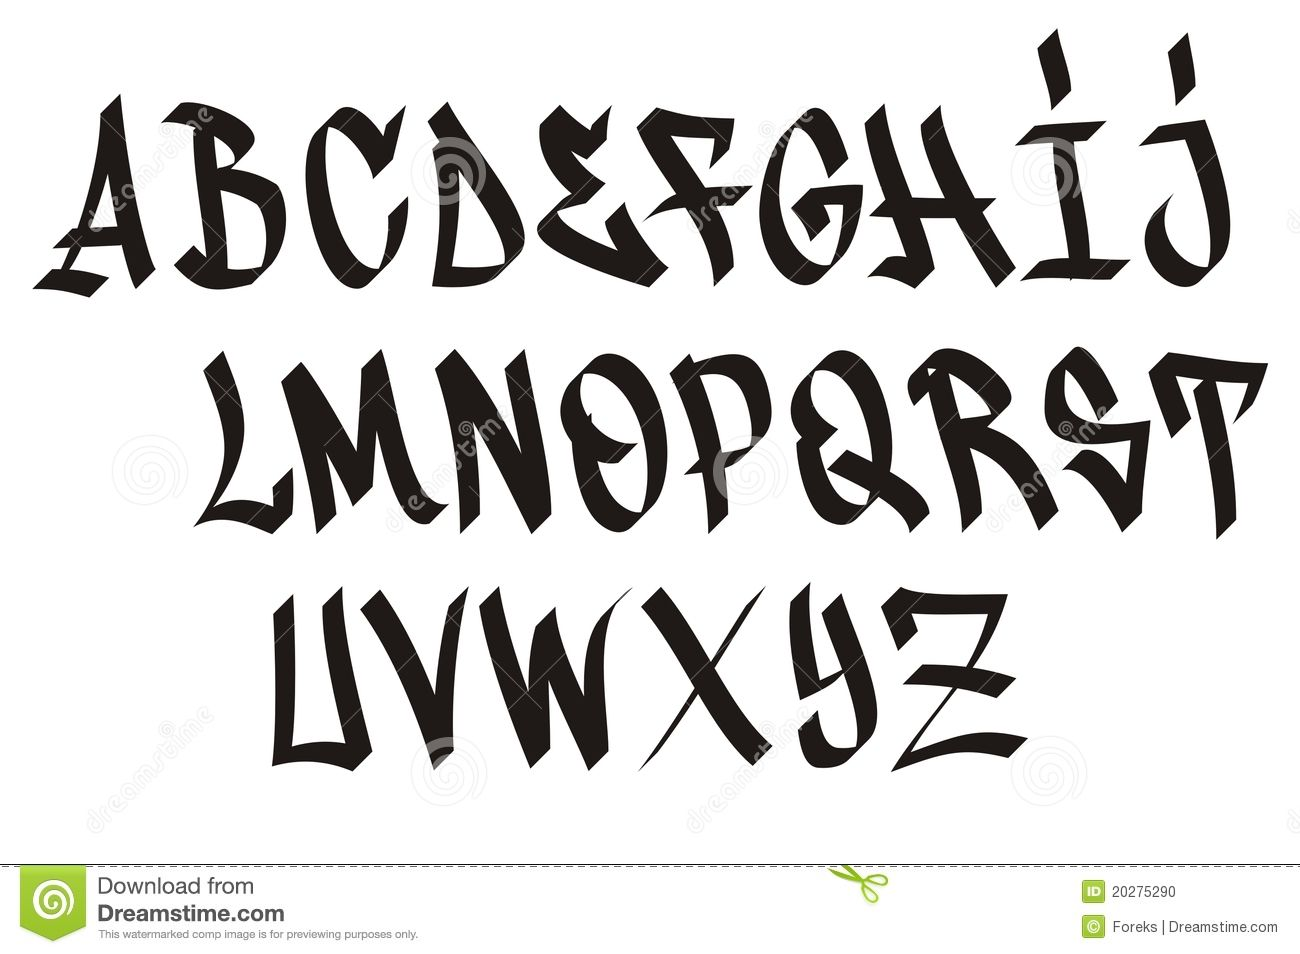 Graffiti font download from over 32 million high quality stock photos images vectors sign up for free today image 20275290